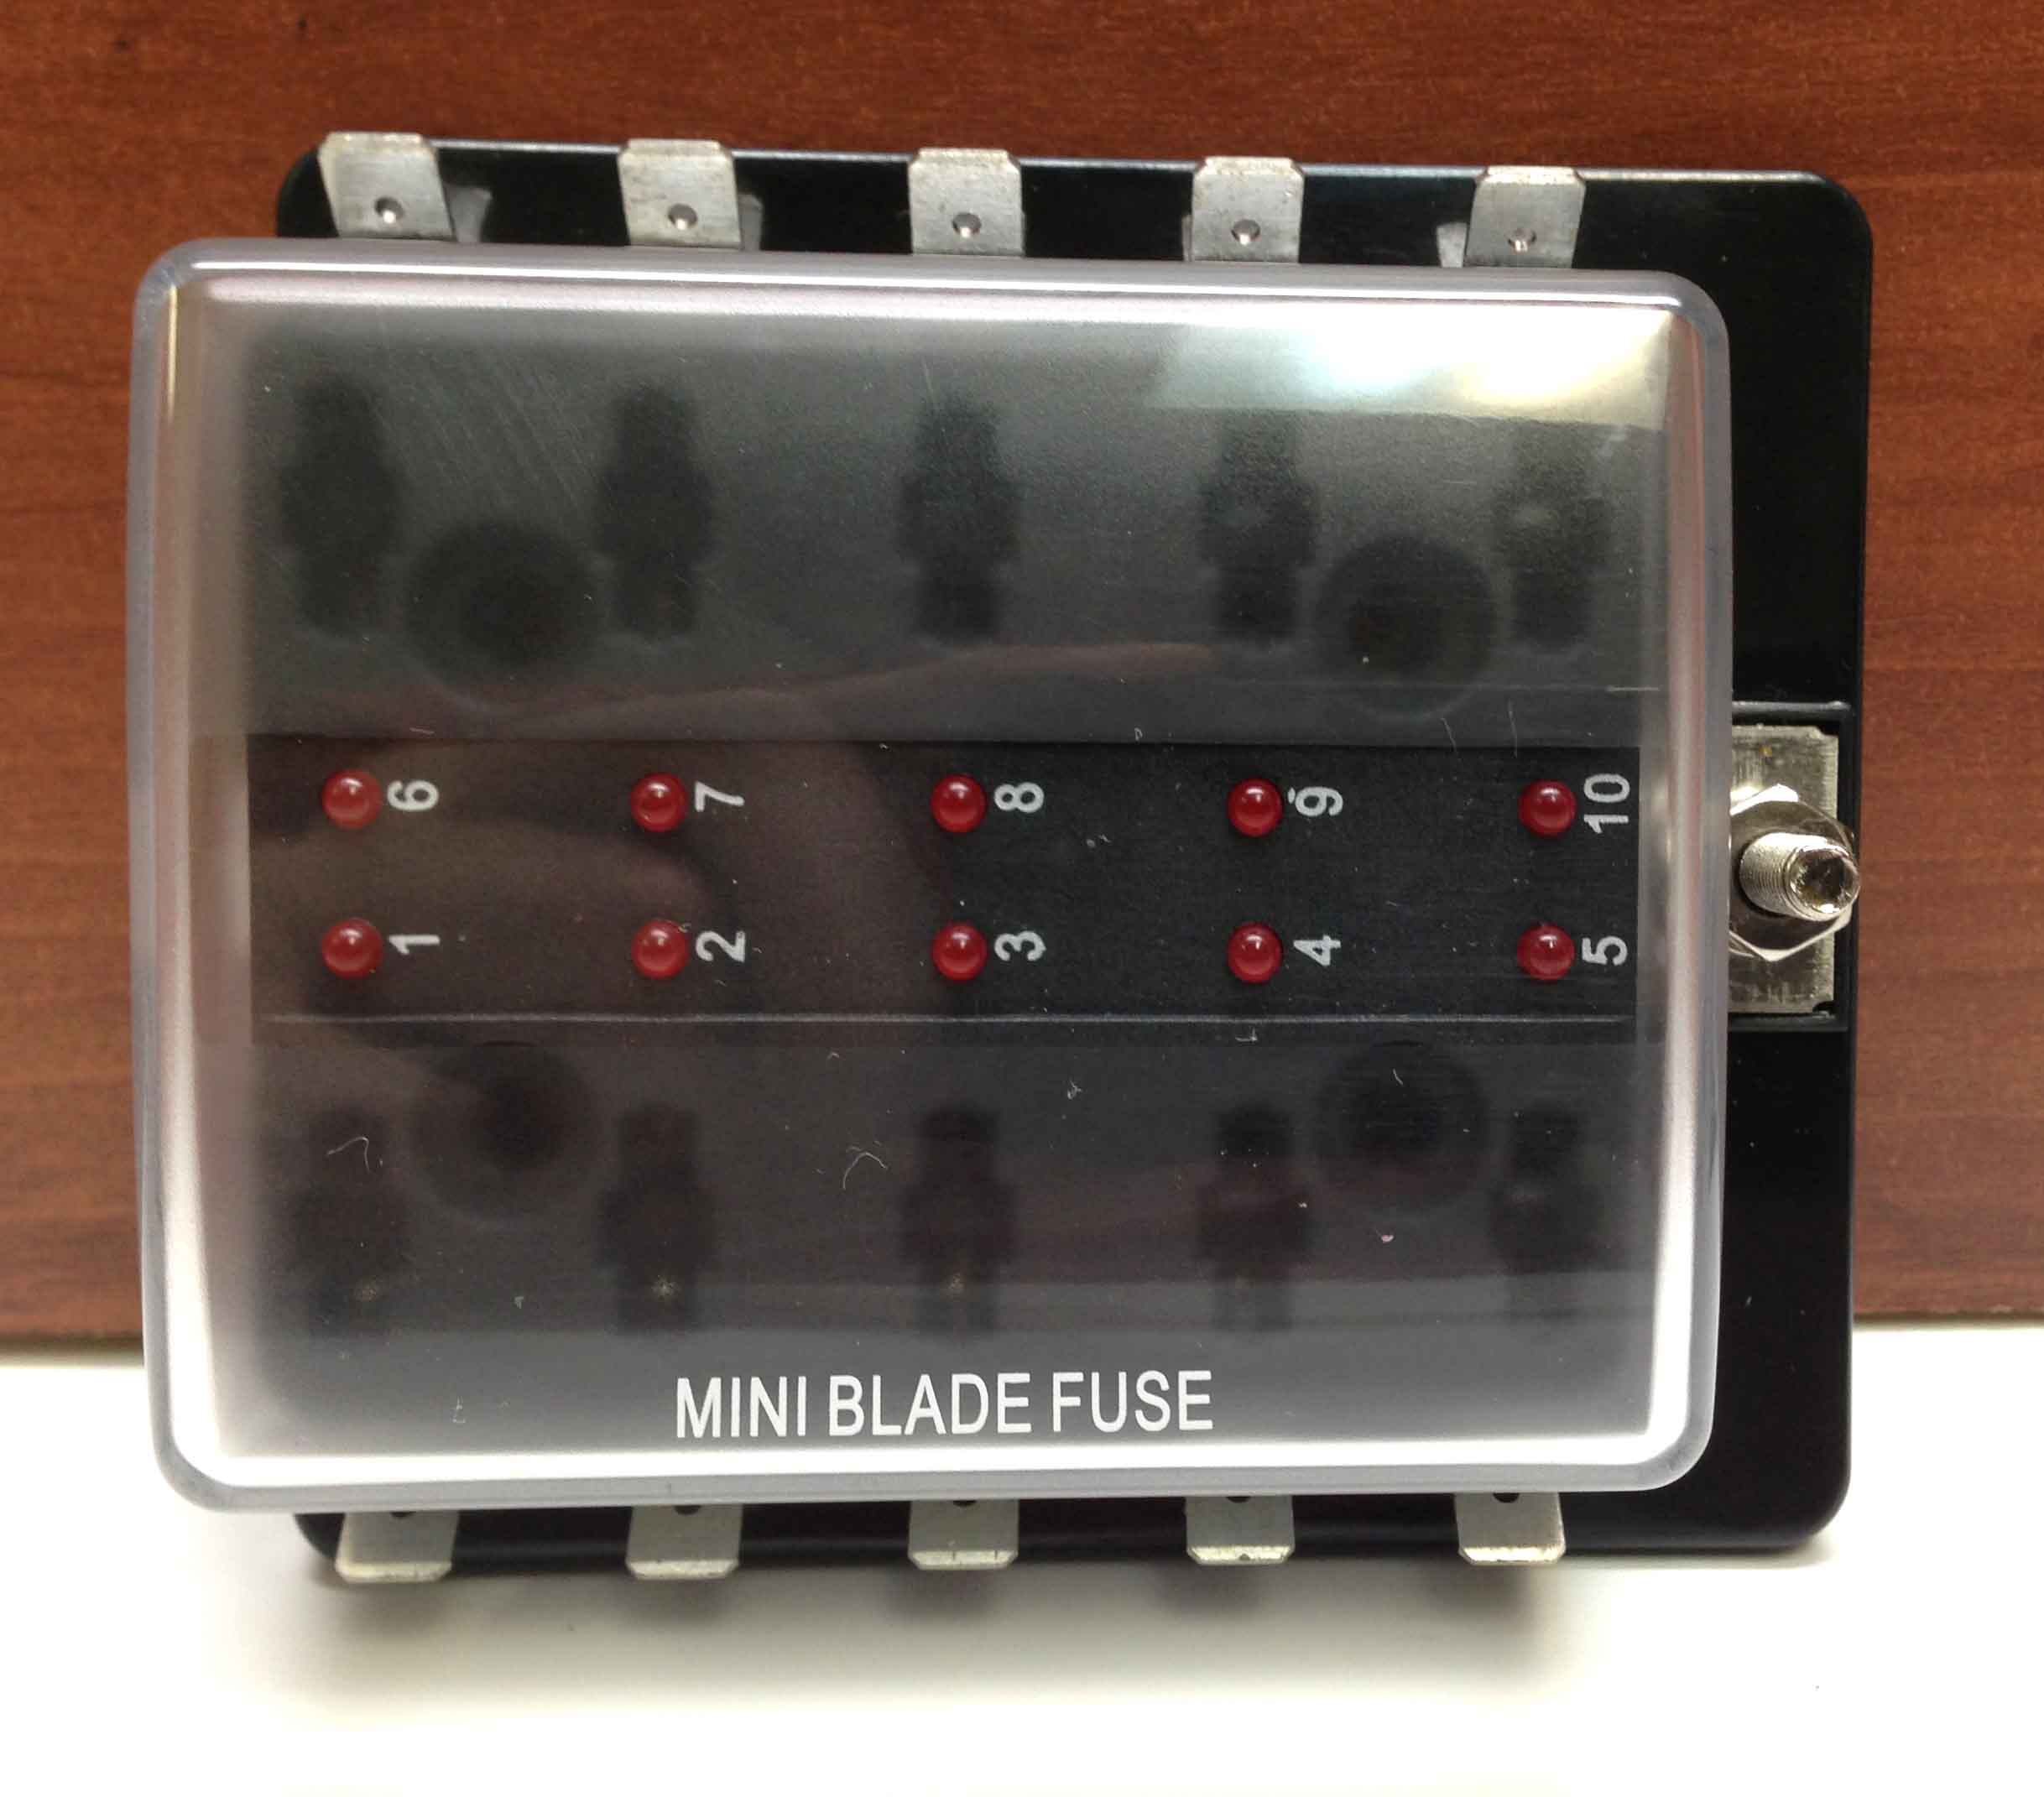 mini blade fuse block holder led indicator marine boat 10 gang us marine fuse box waterproof mini blade fuse block holder led indicator marine boat 10 gang u